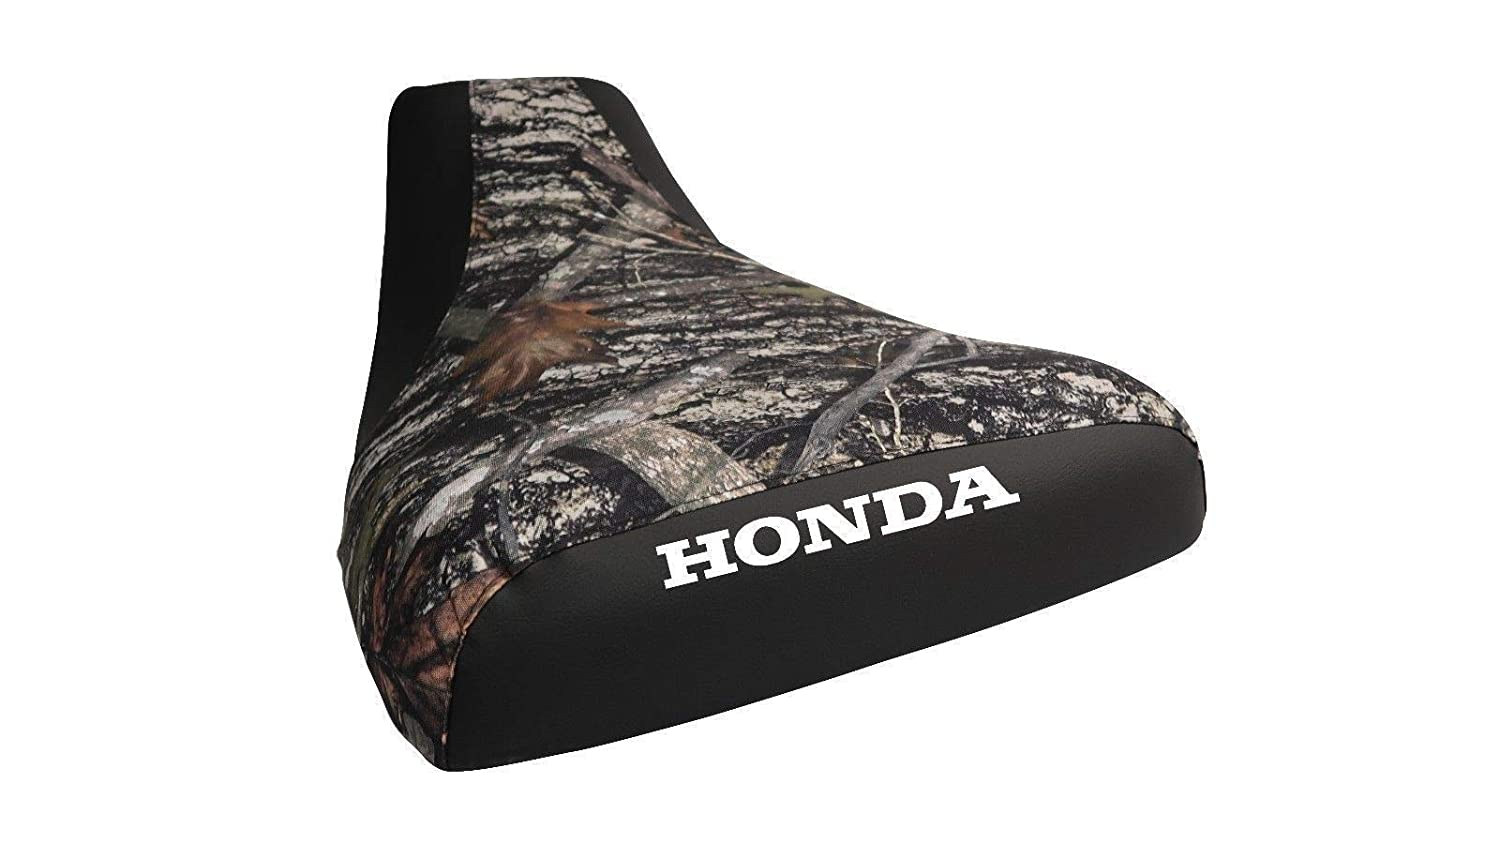 VPS Seat Cover Compatible With Honda TRX300 98-99 Black Vinyl ATV Seat Cover TRX 300